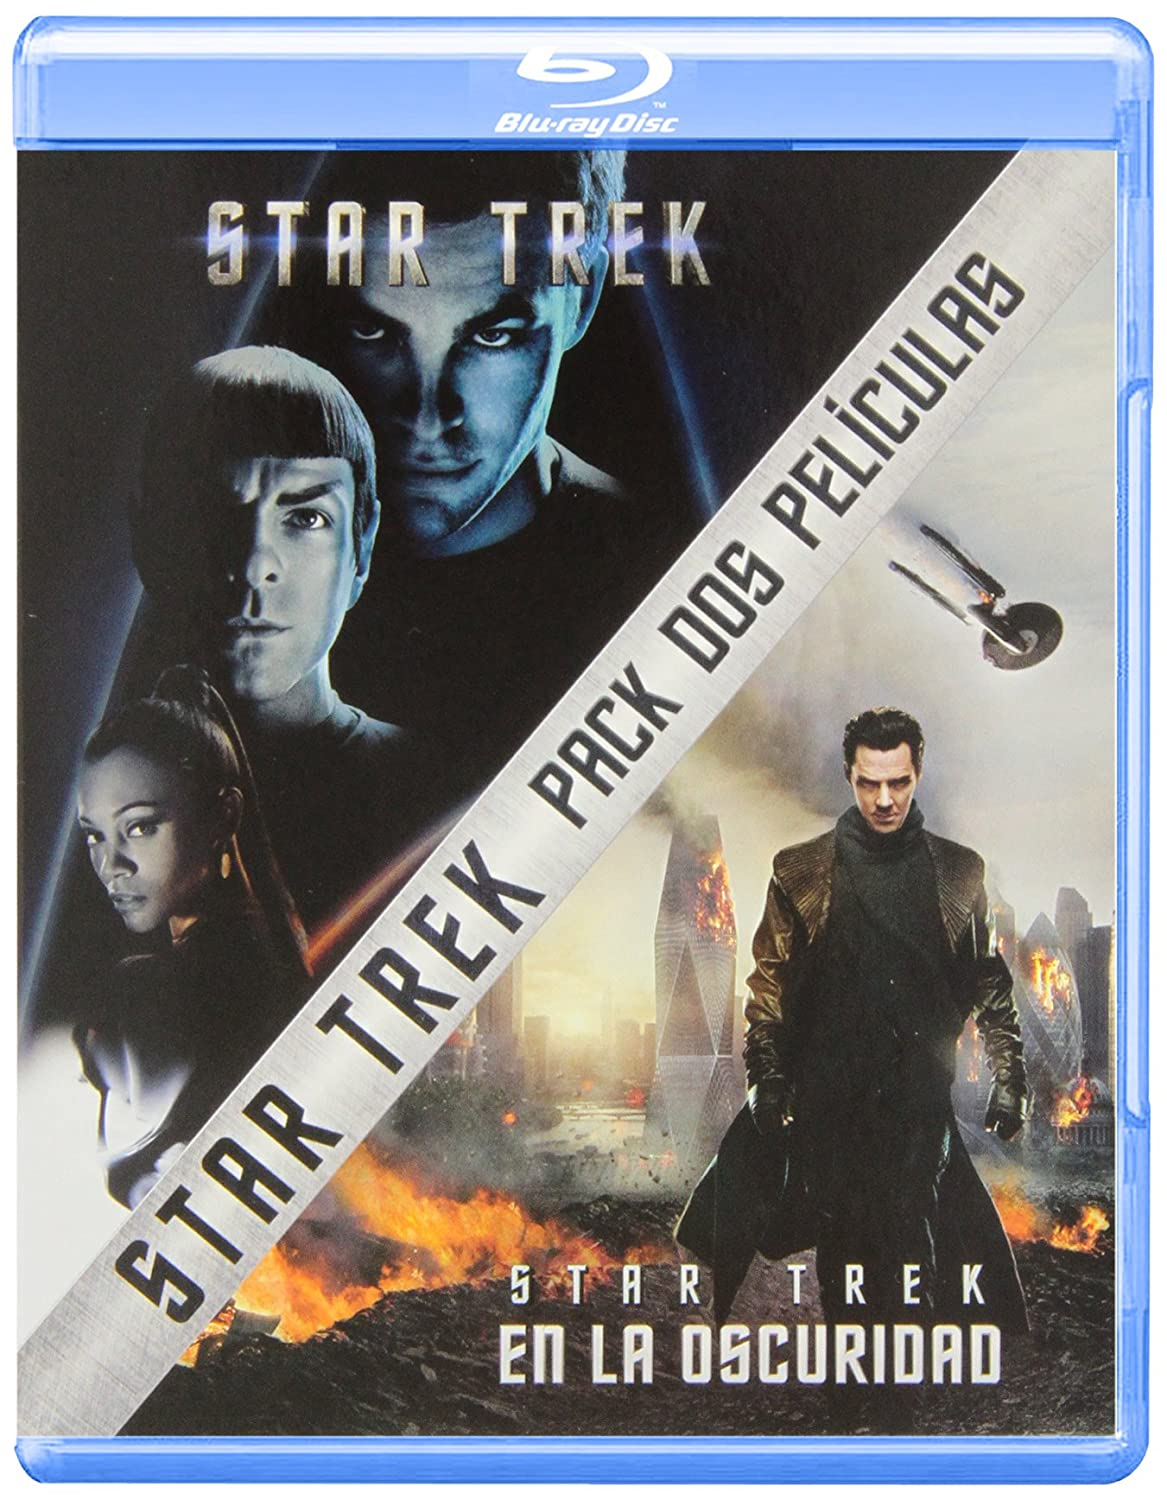 Pack: Star Trek + Star Trek: En La Oscuridad Blu-ray: Amazon.es: Chris Pine, Zachary Quinto, Zoe Saldana, Benedict Cumberbatch, Karl Urban, Simon Pegg, Alice Eve, Bruce Greenwood, Peter Weller, Anton Yelchin, John